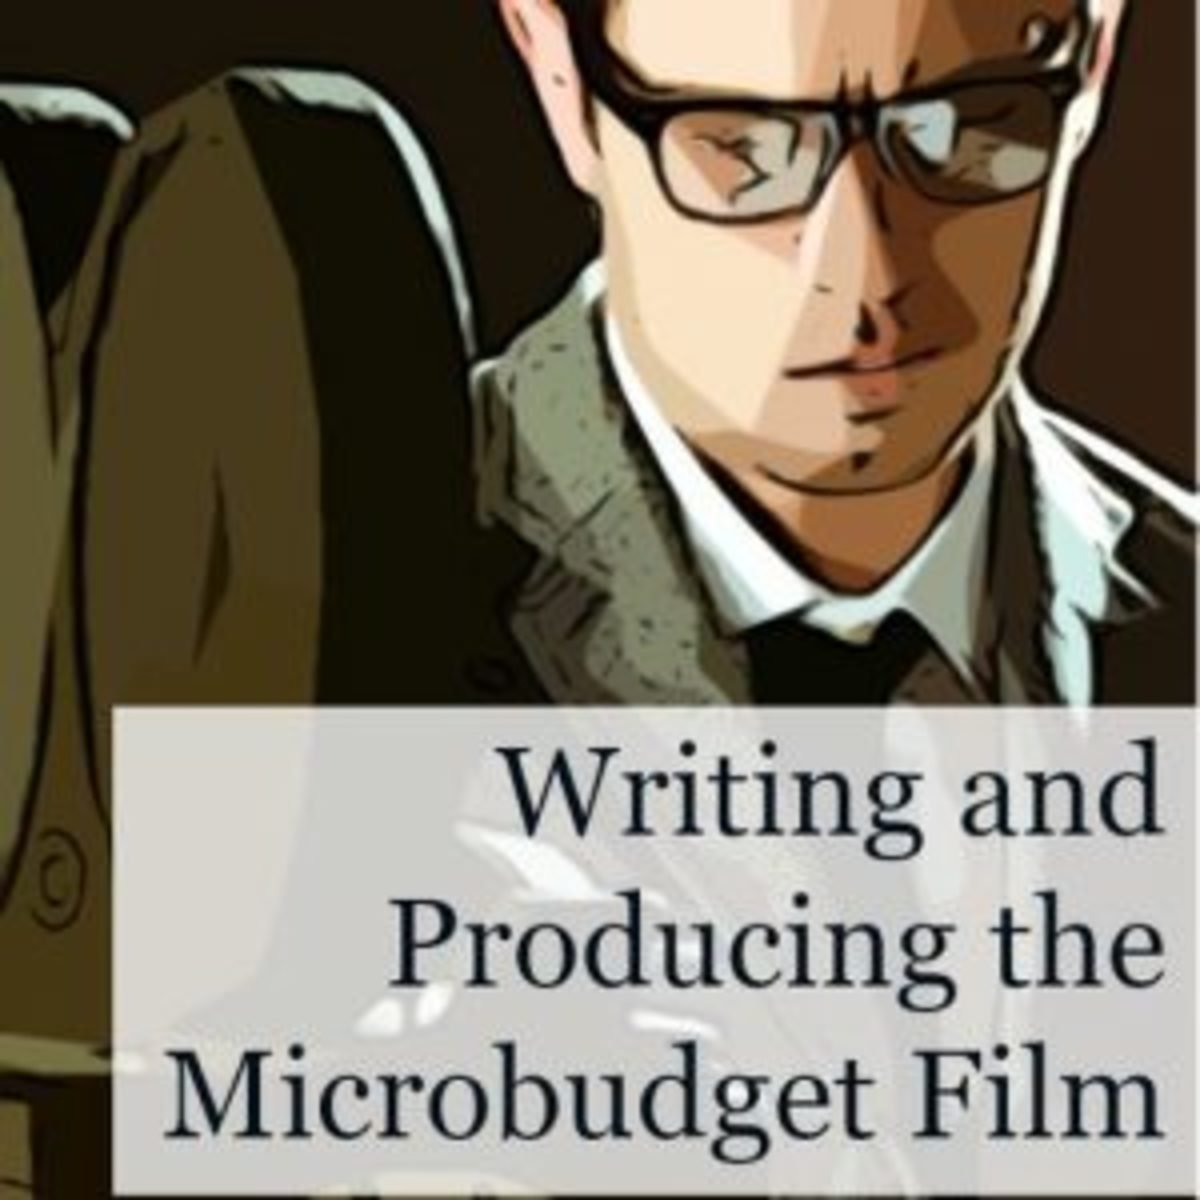 Writing and Producing the Microbudget Film